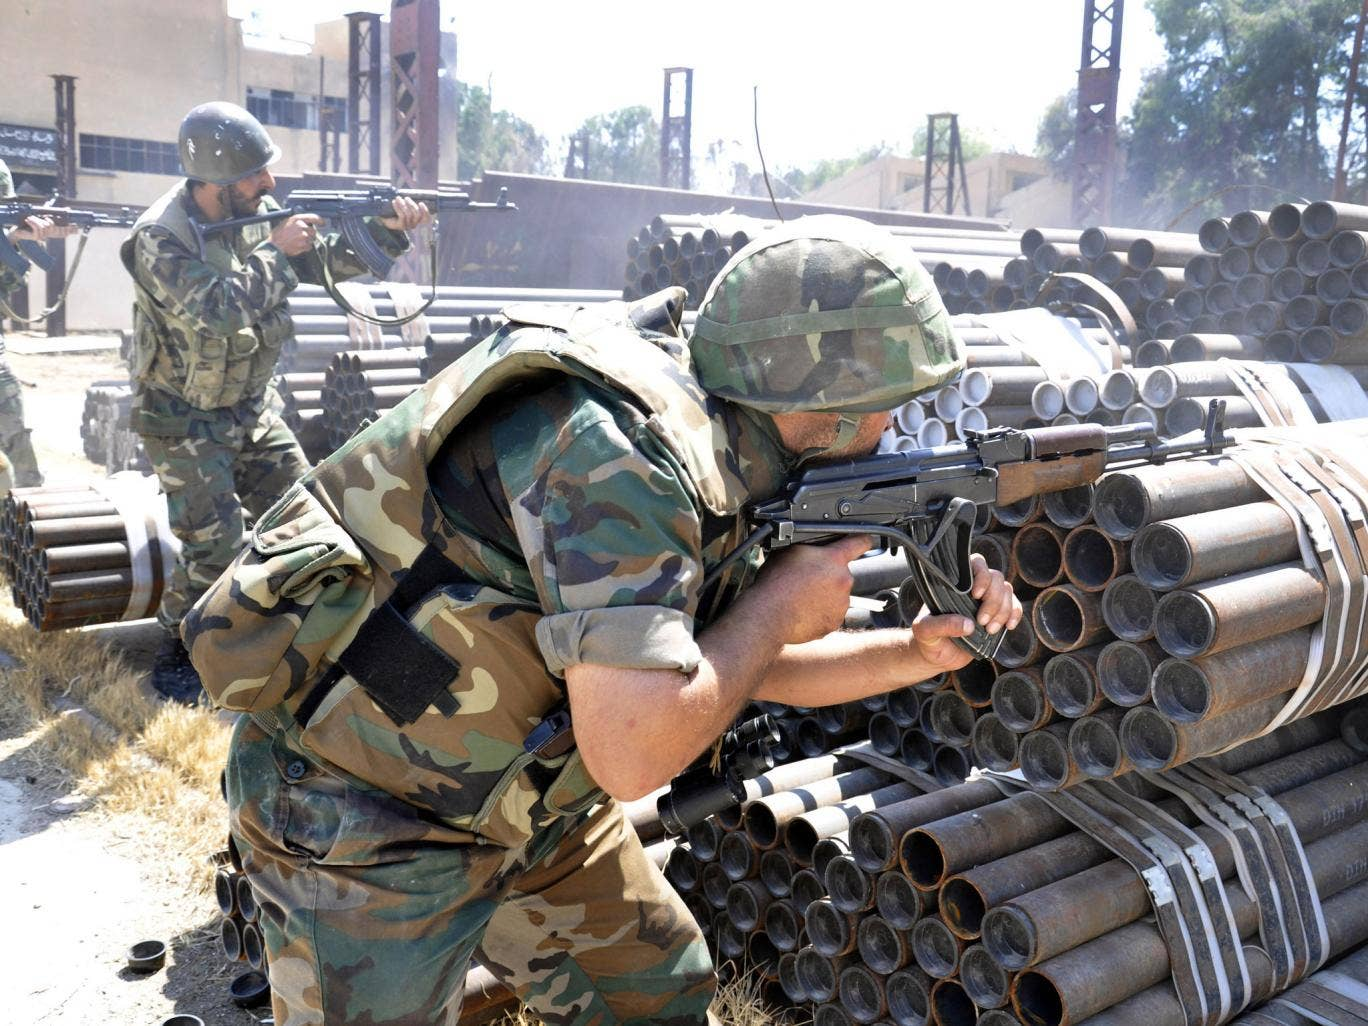 Syrian forces clashed with rebels in Aleppo